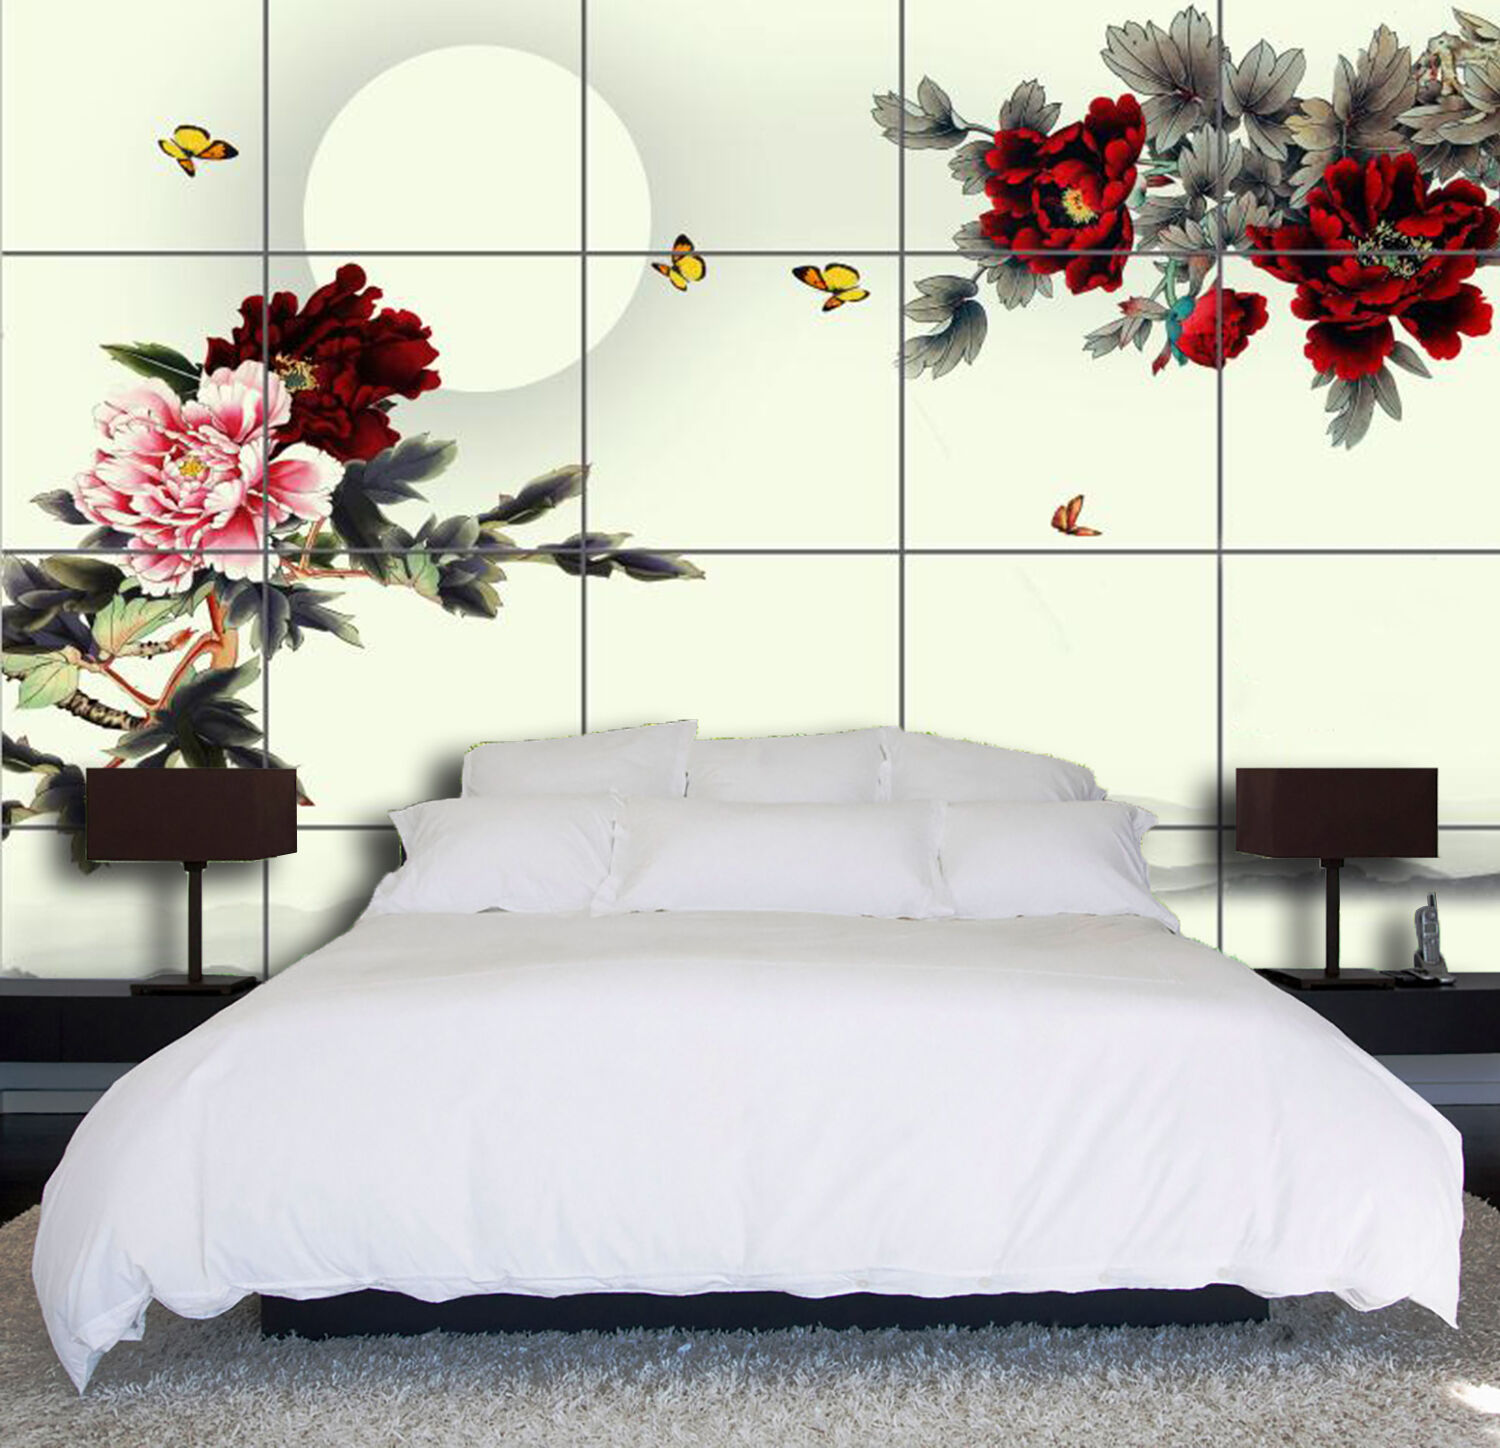 3D Flowers ROT moon large Wall Paper wallPrint Decal Wall Deco Indoor wall Mural